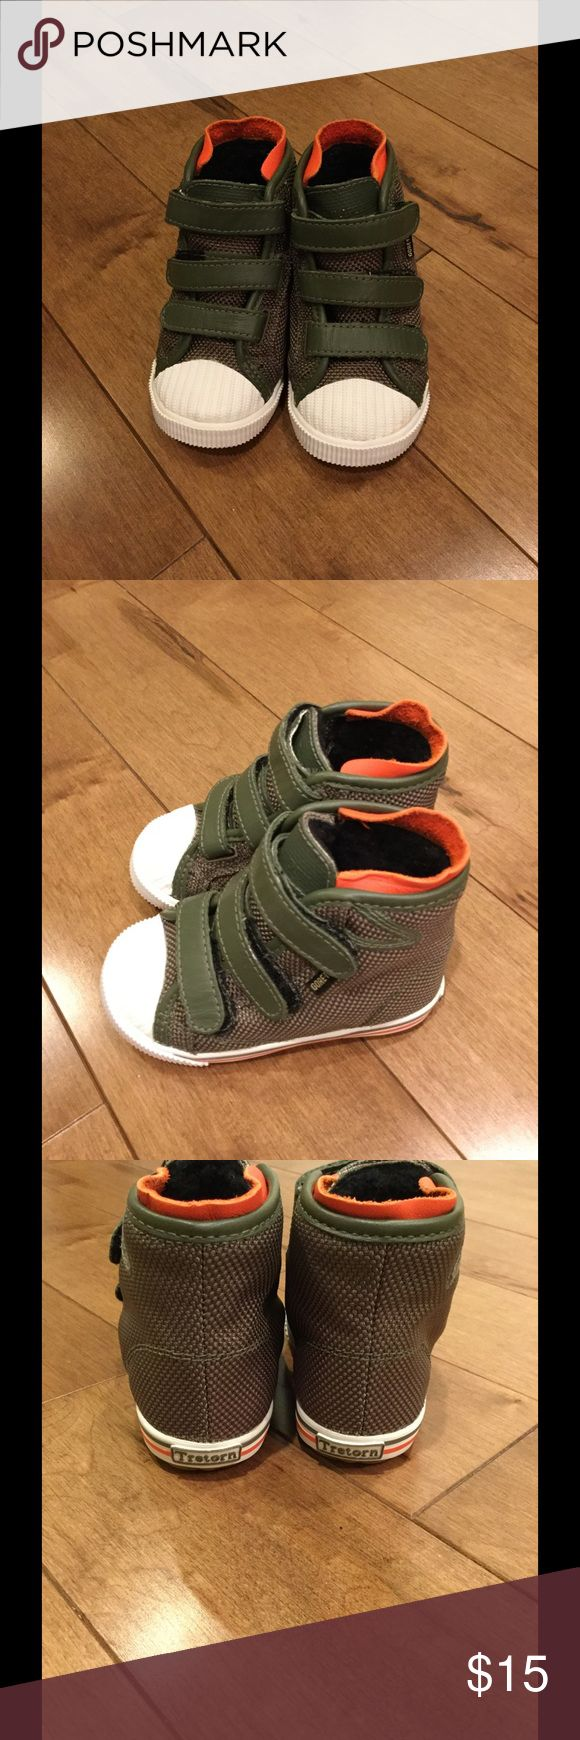 New Tretorn kids/toddler boots Brand new never worn Tretorn toddler high top boots (fleece inside). US toddler size 6. Tretorn Shoes Boots